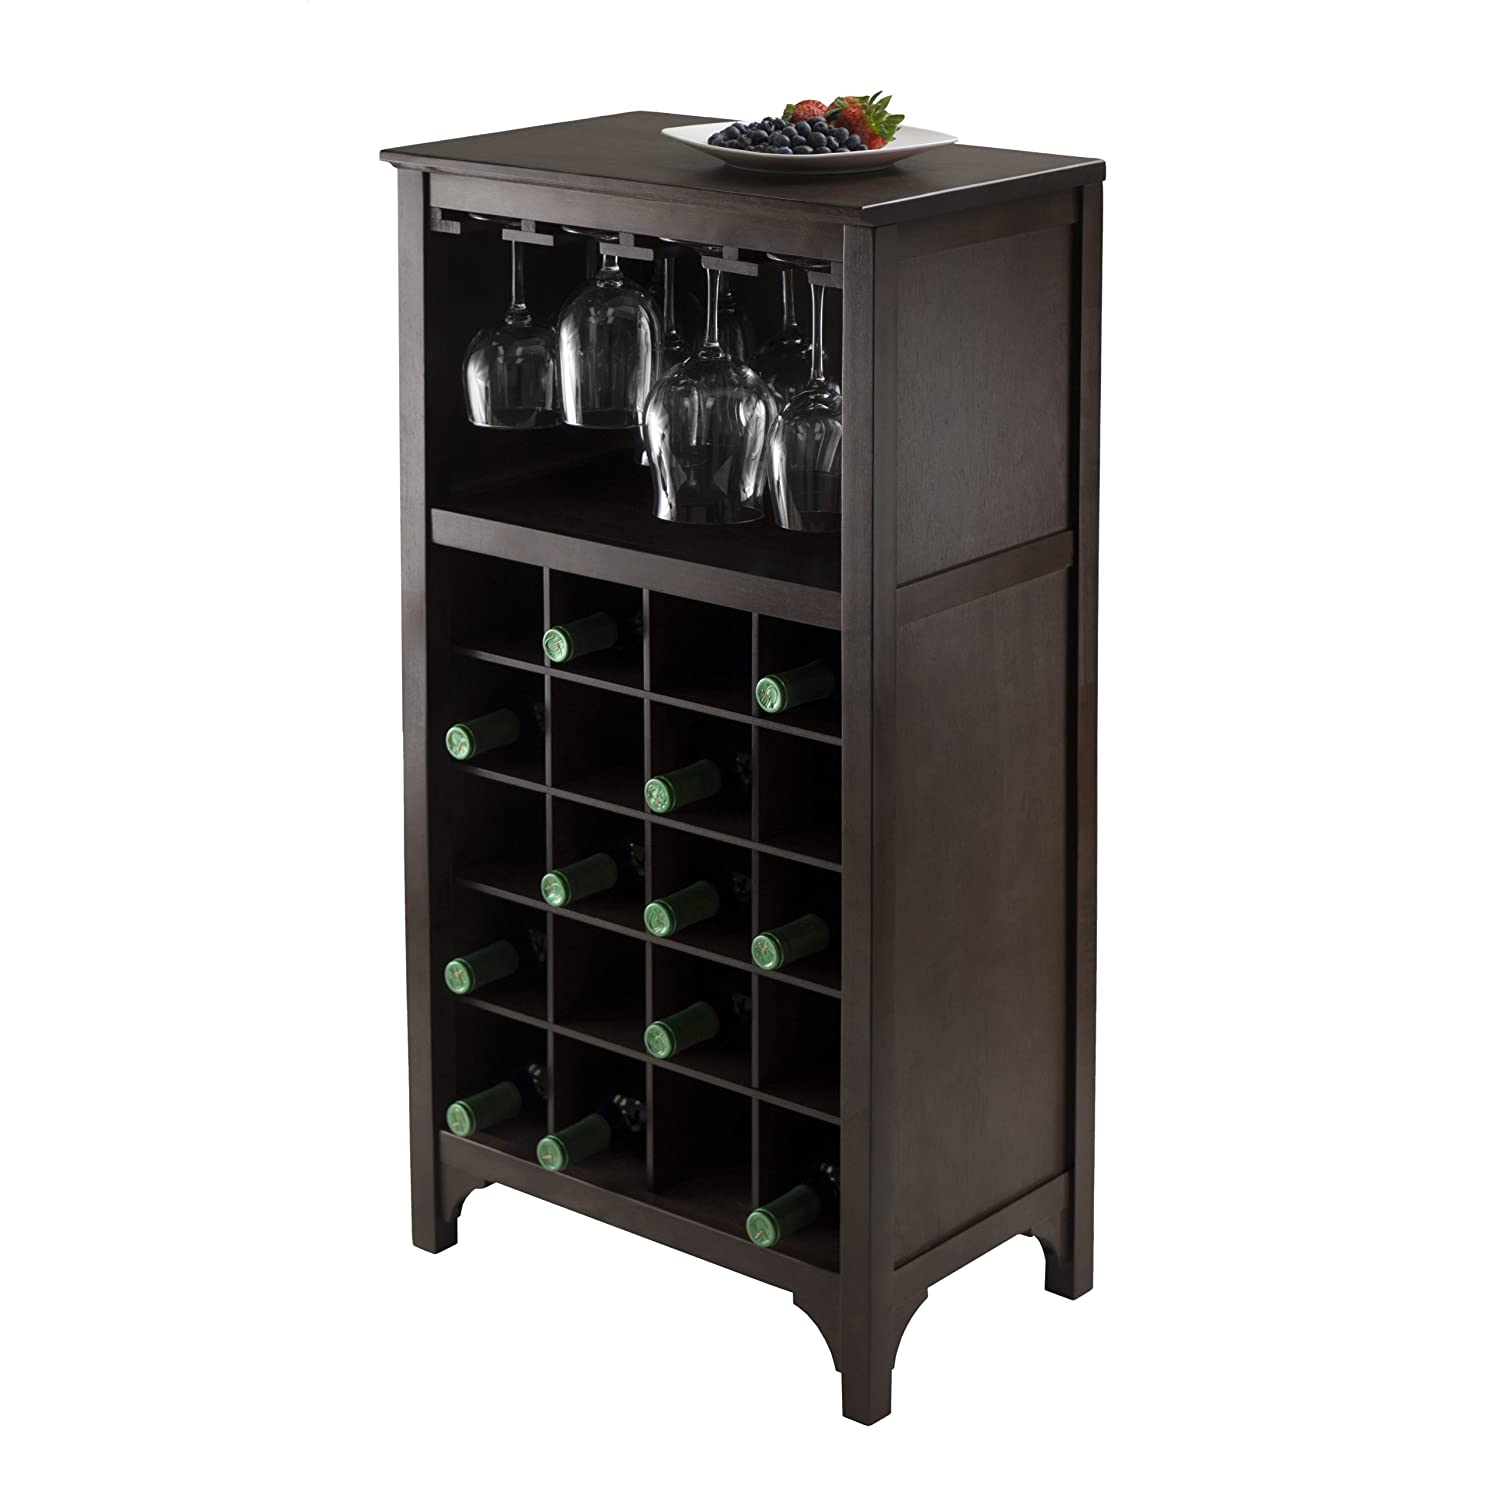 Small Wine Storage Cabinets Wine Storage Cabinet Dark Wood Bar 12 Glass 20 Bottles